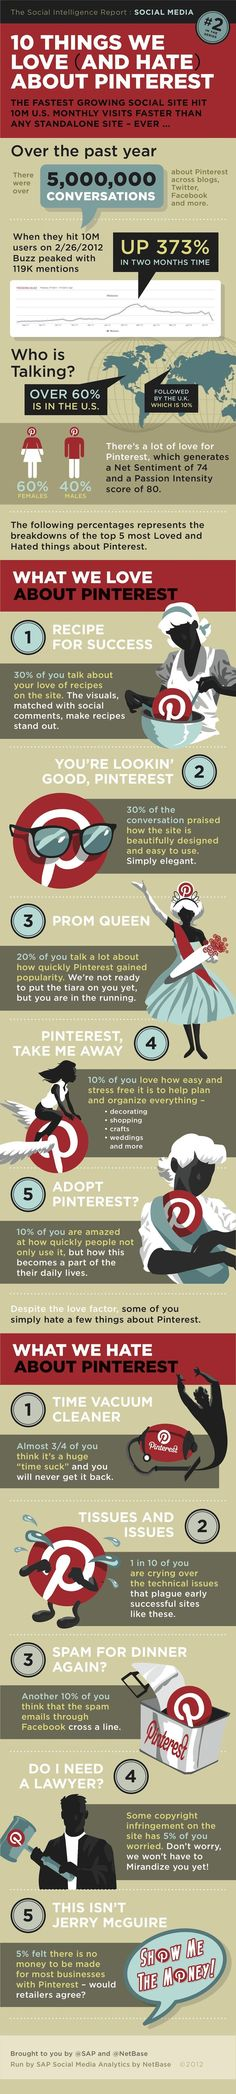 10 things people love and hate about Pinterest #infographic